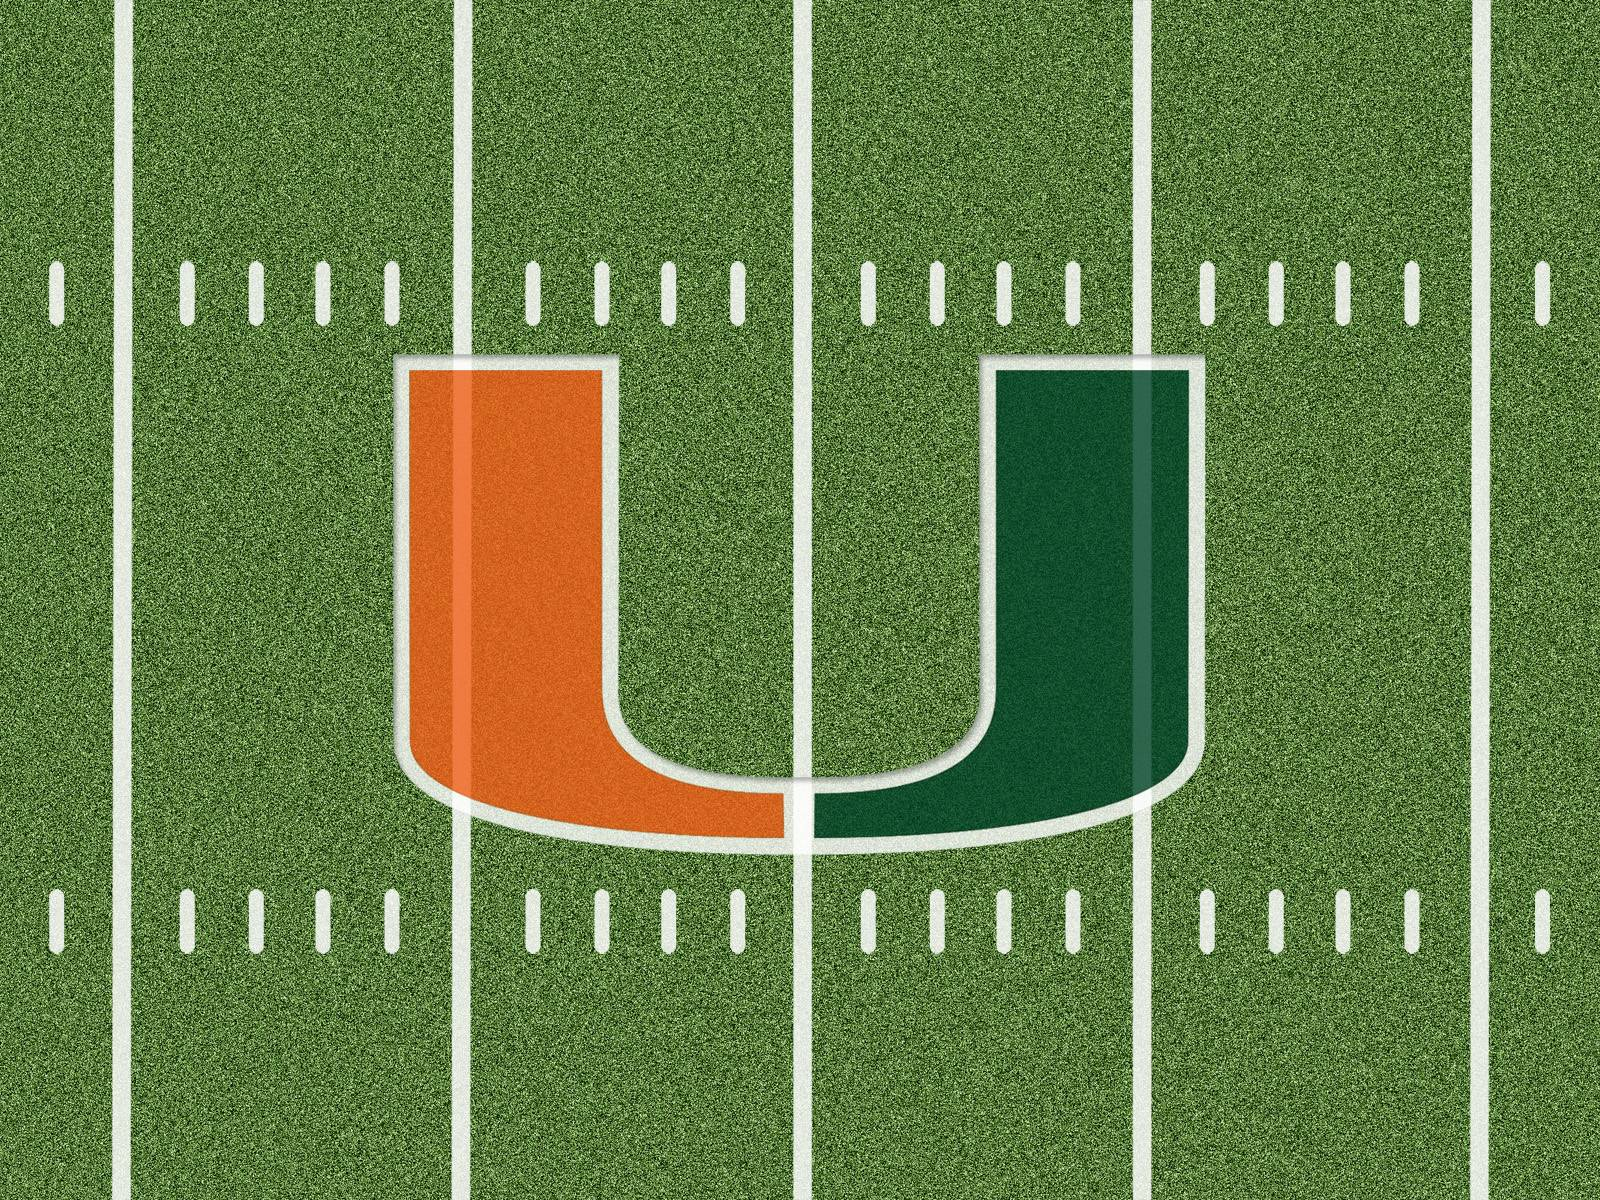 University Of Miami Hurricanes Football Wallpaper